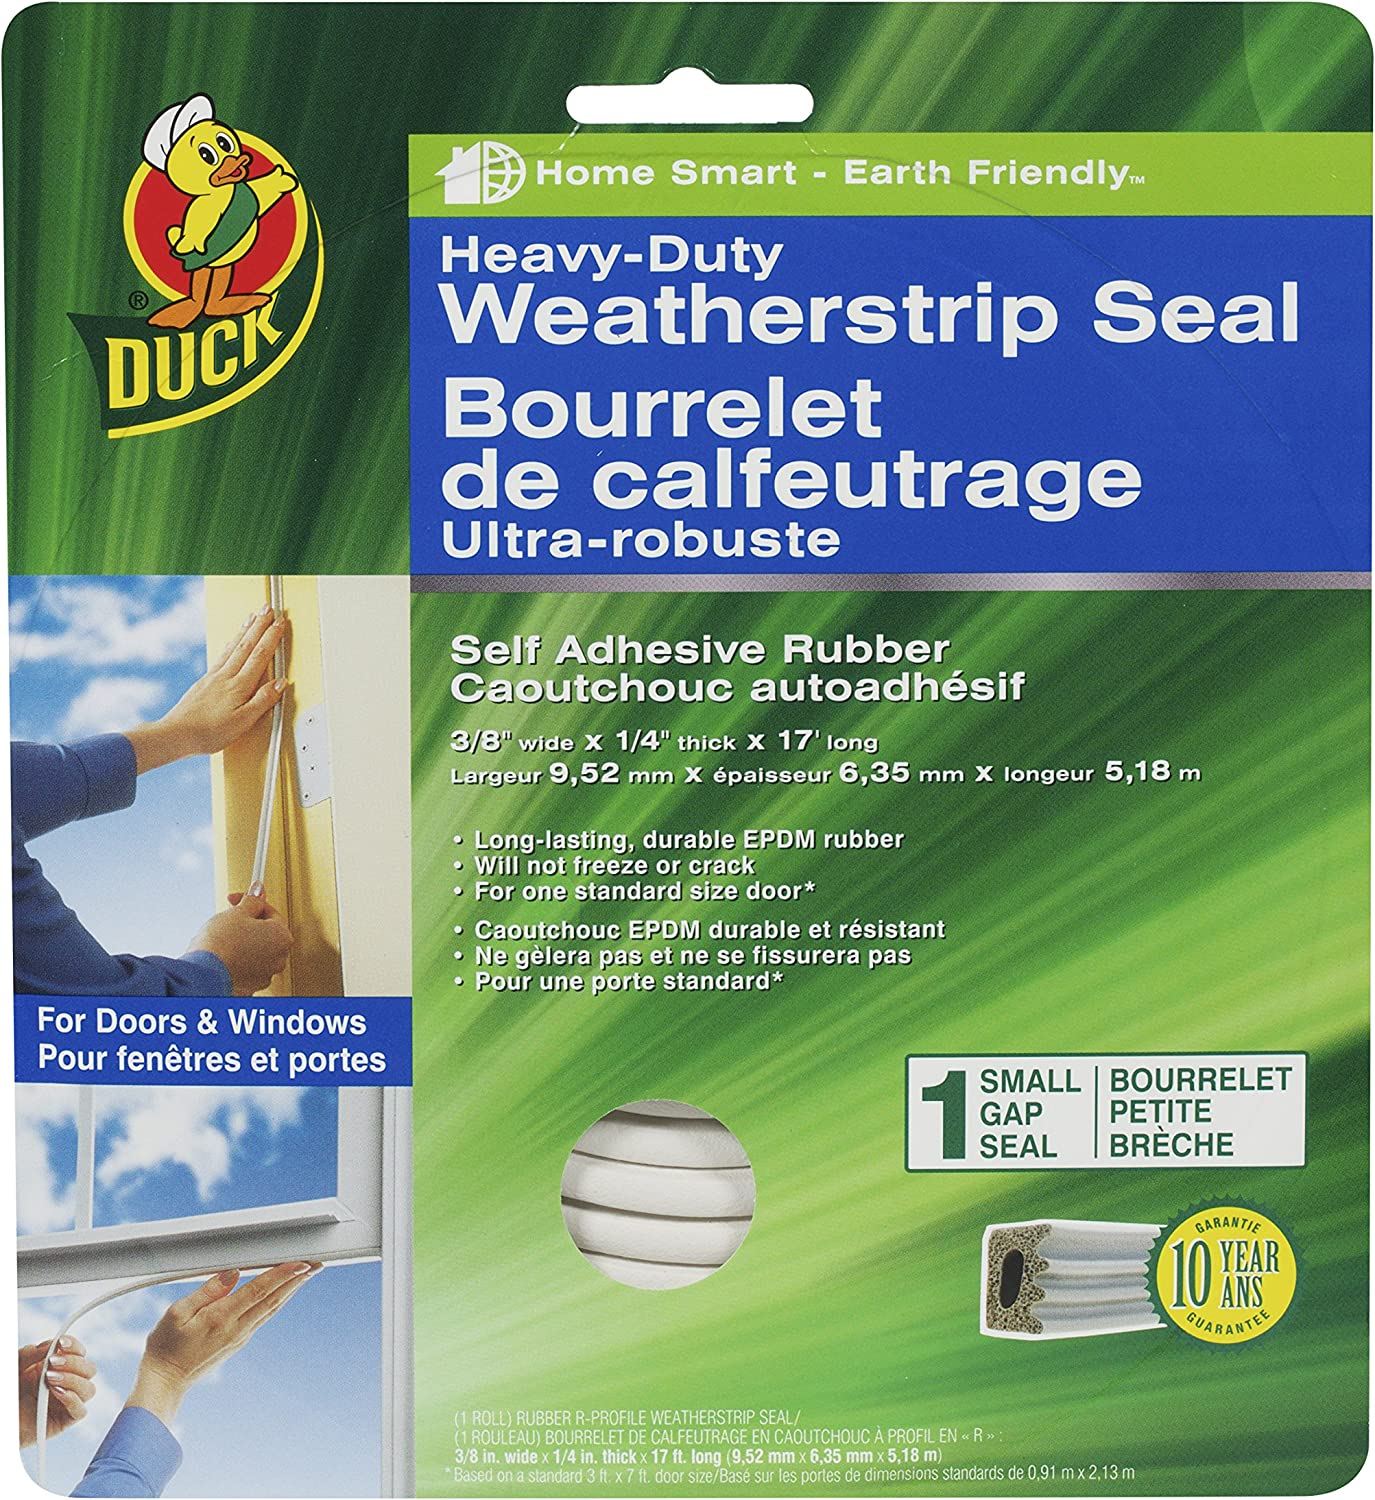 Duck Brand Heavy-Duty Self Adhesive Weatherstrip Seal for Small Gap, 3/8-Inch x 1/4-Inch x 17-Feet, 1 Seal, 282439